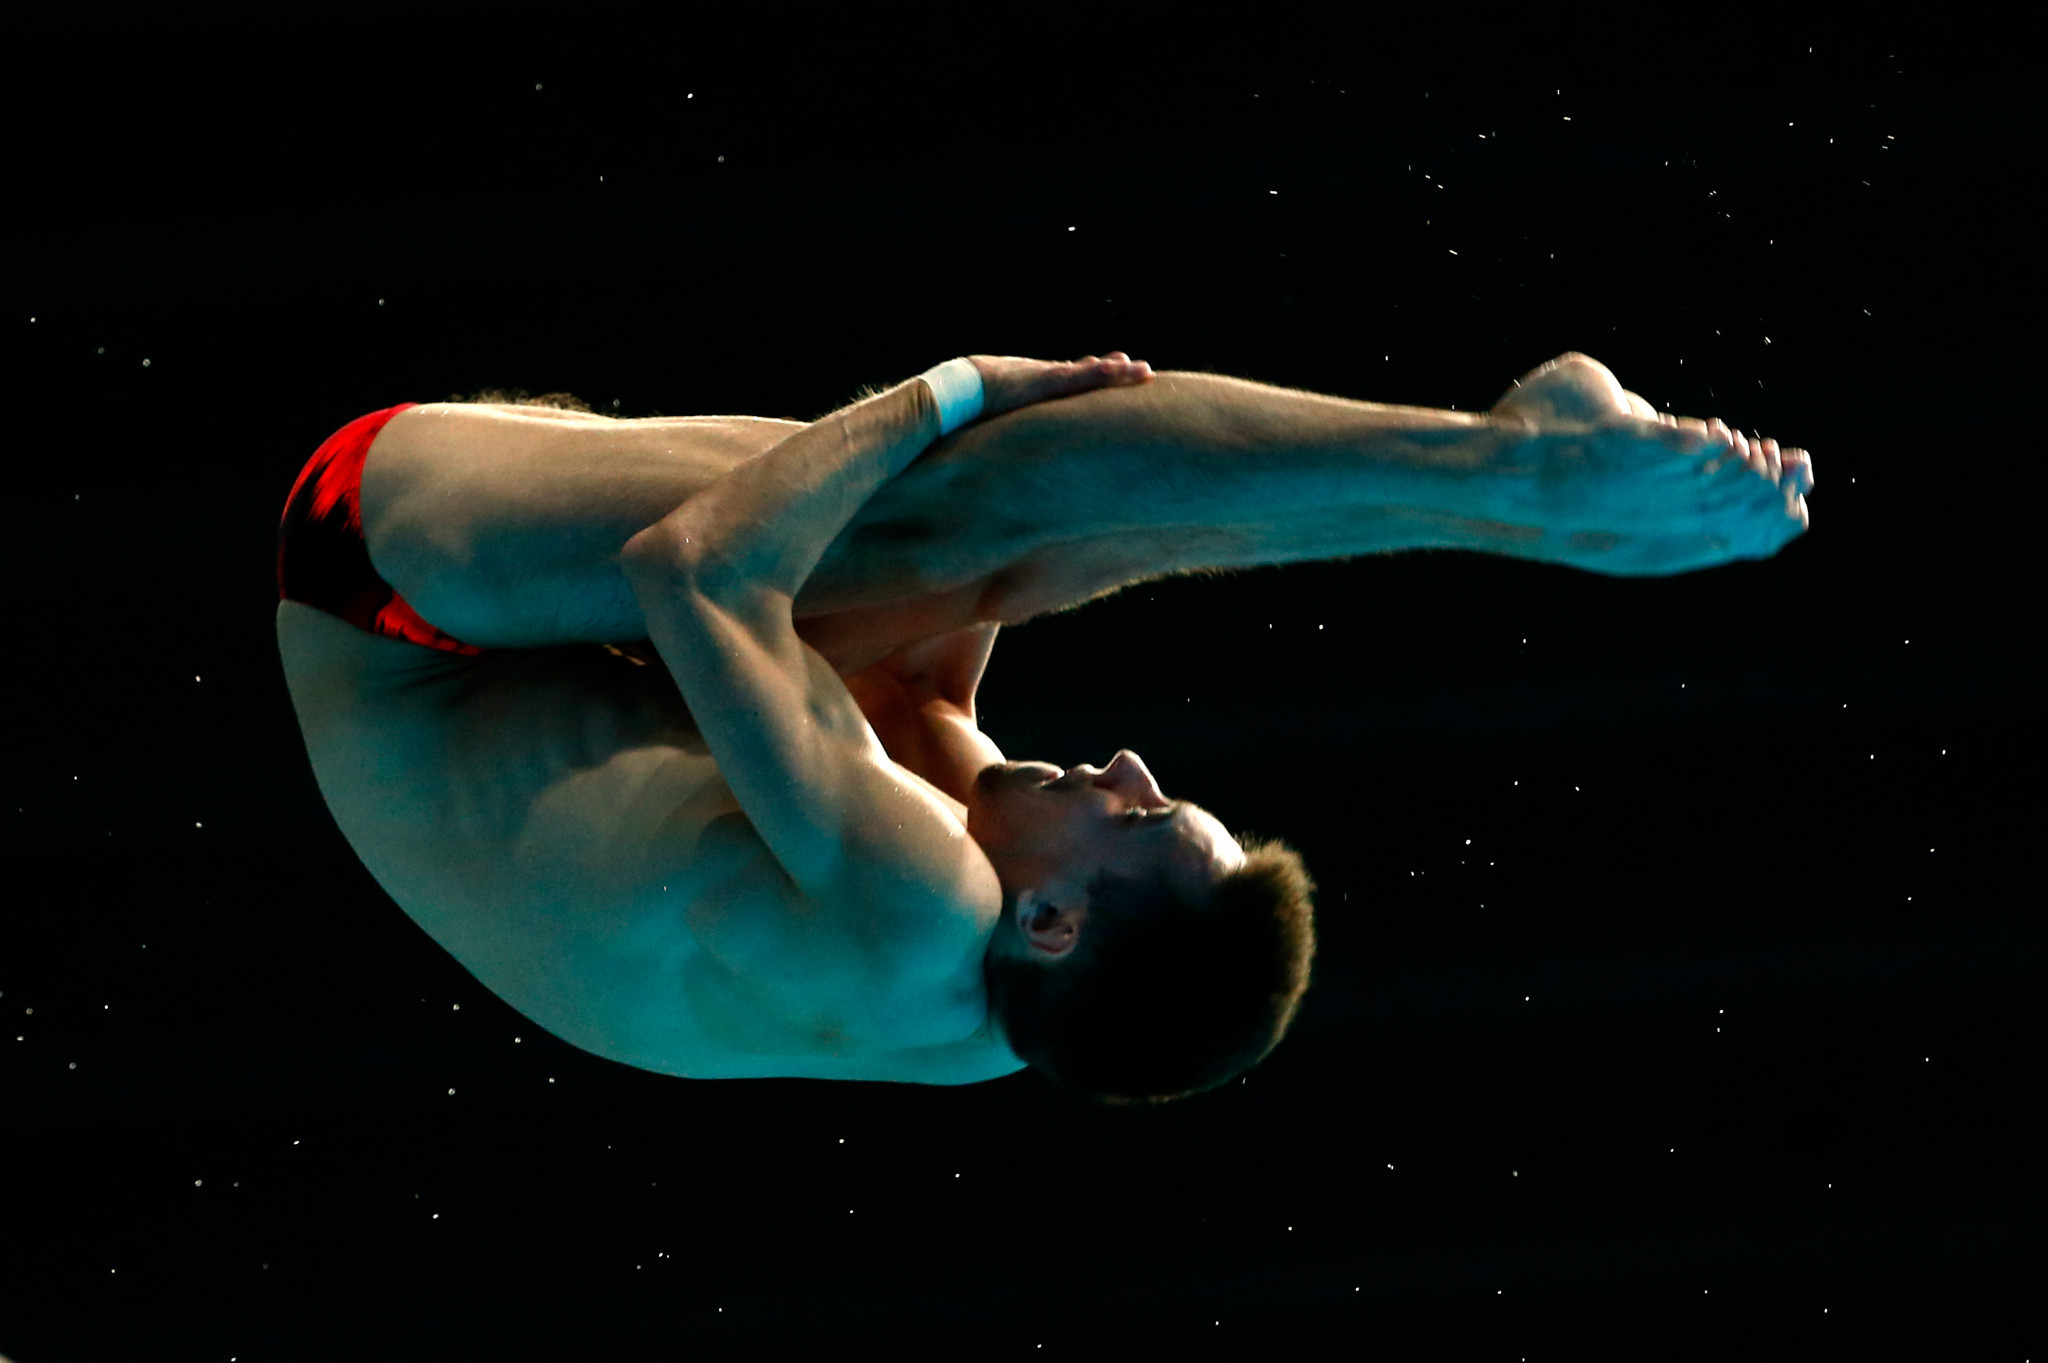 Victor Minibaev won the men's 10m platform at the FINA Diving Grand Prix in Rostock ©Getty Images